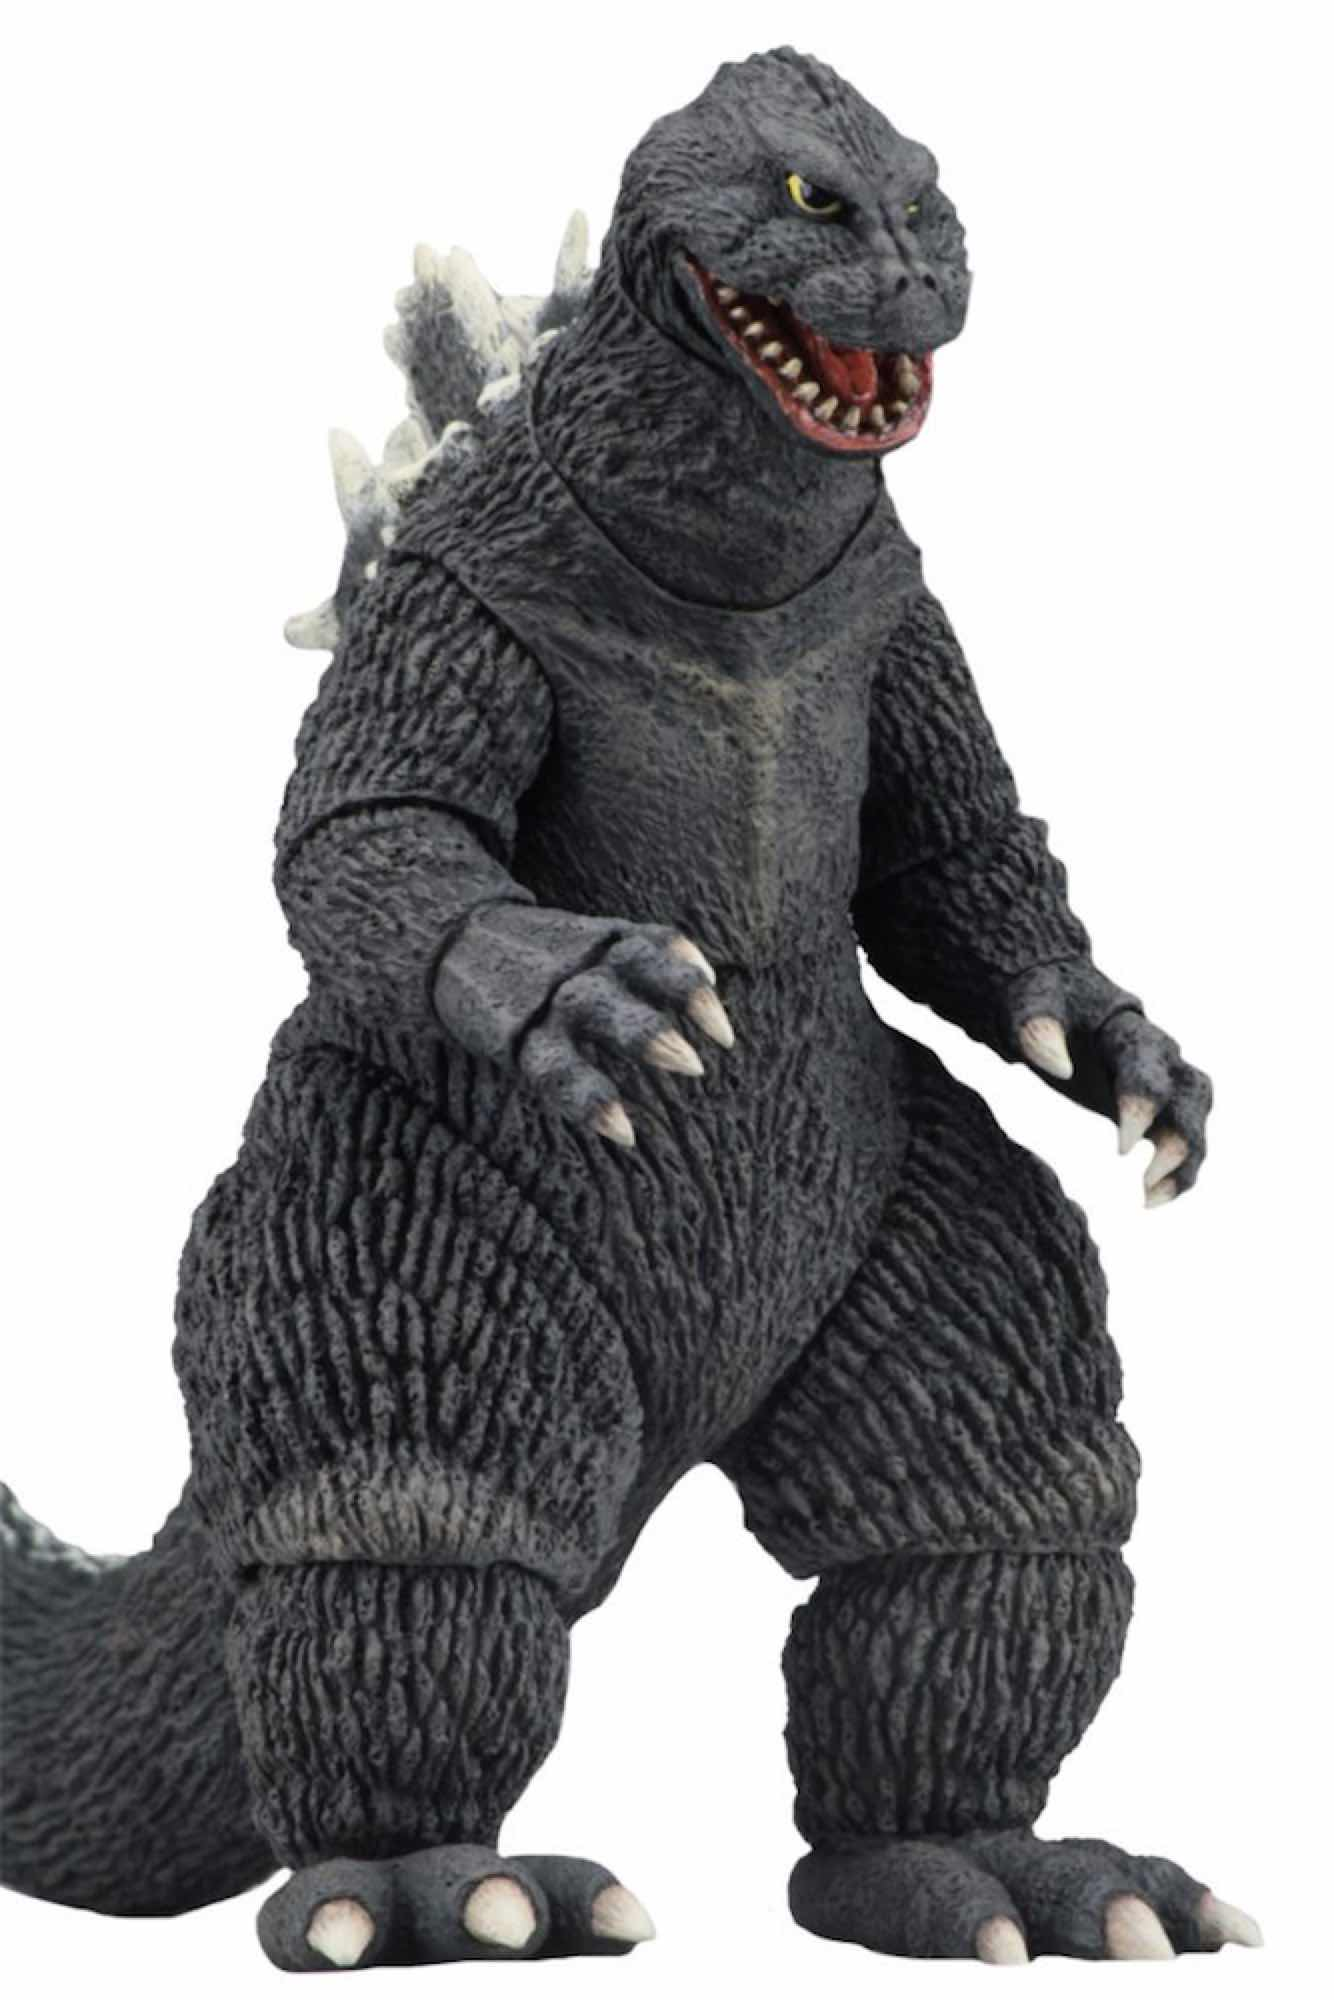 GODZILLA 1962 MOVIE FIGURA 30 CM KING KONG VS GODZILLA